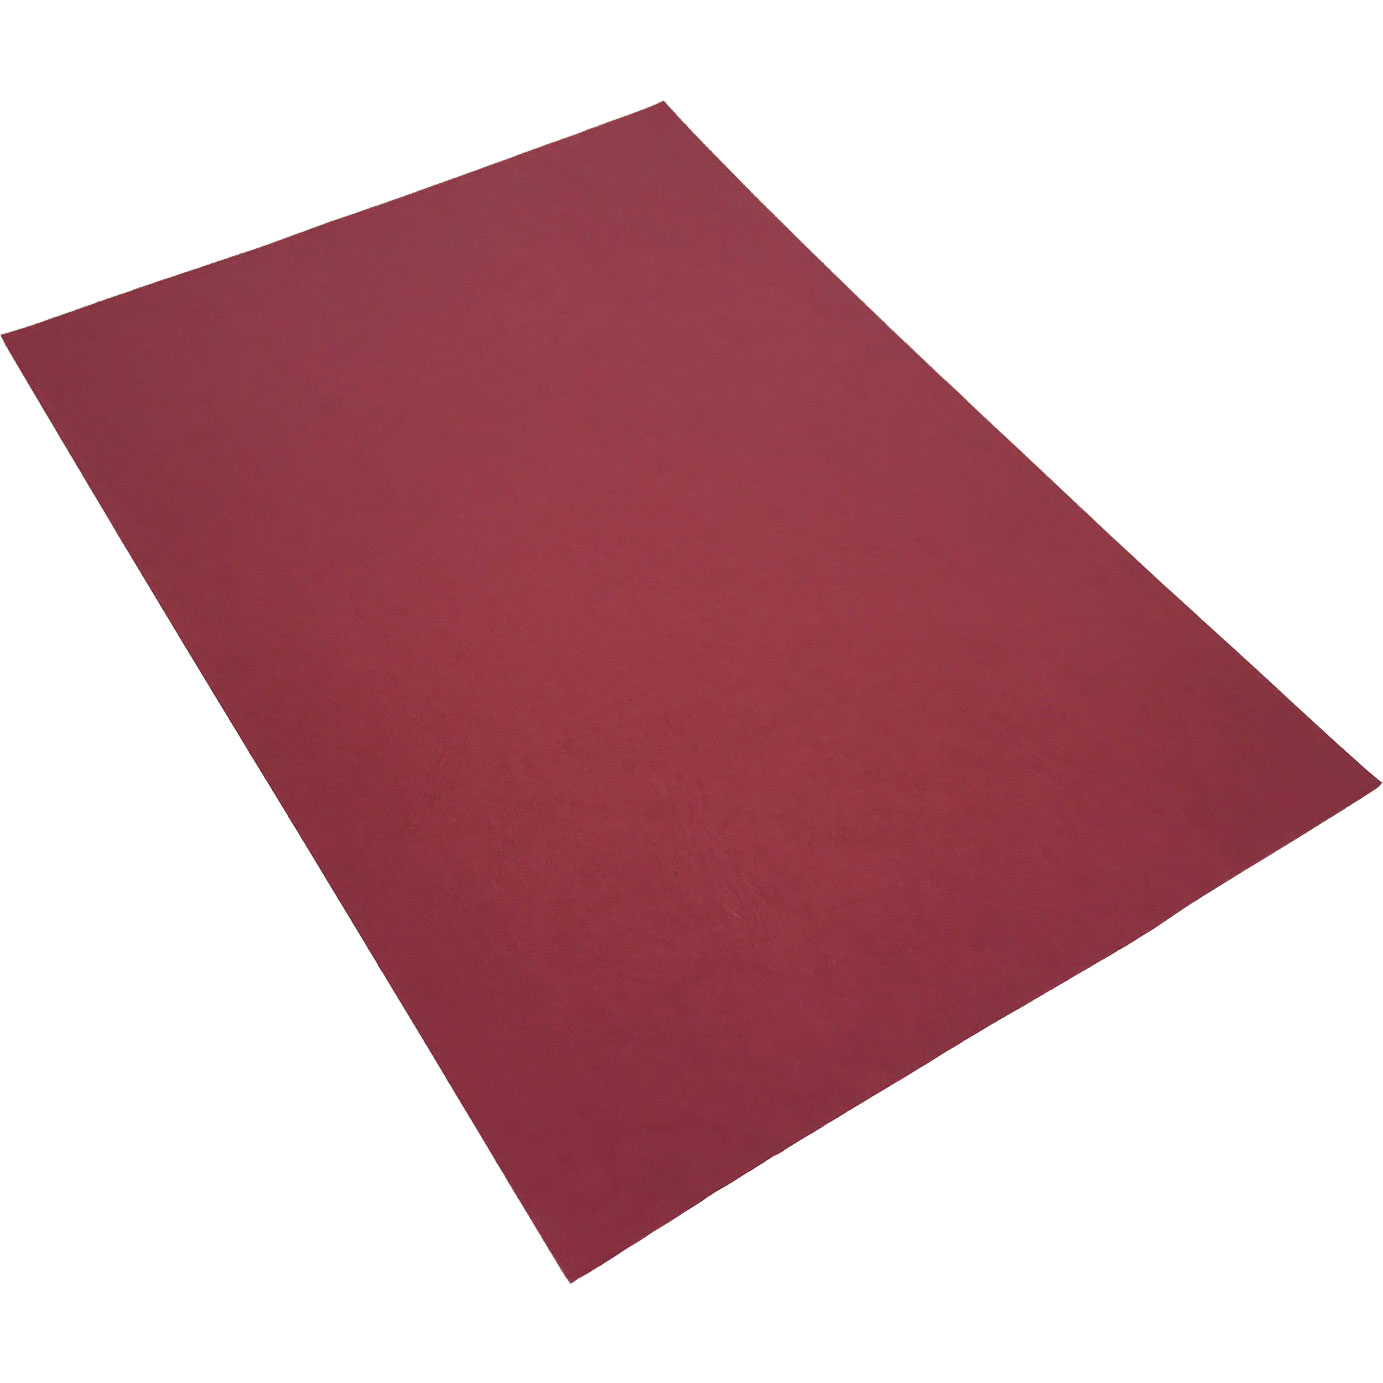 Leitz A4 Burgundy-Red Leathergrain Binding Cover Boards (1000)